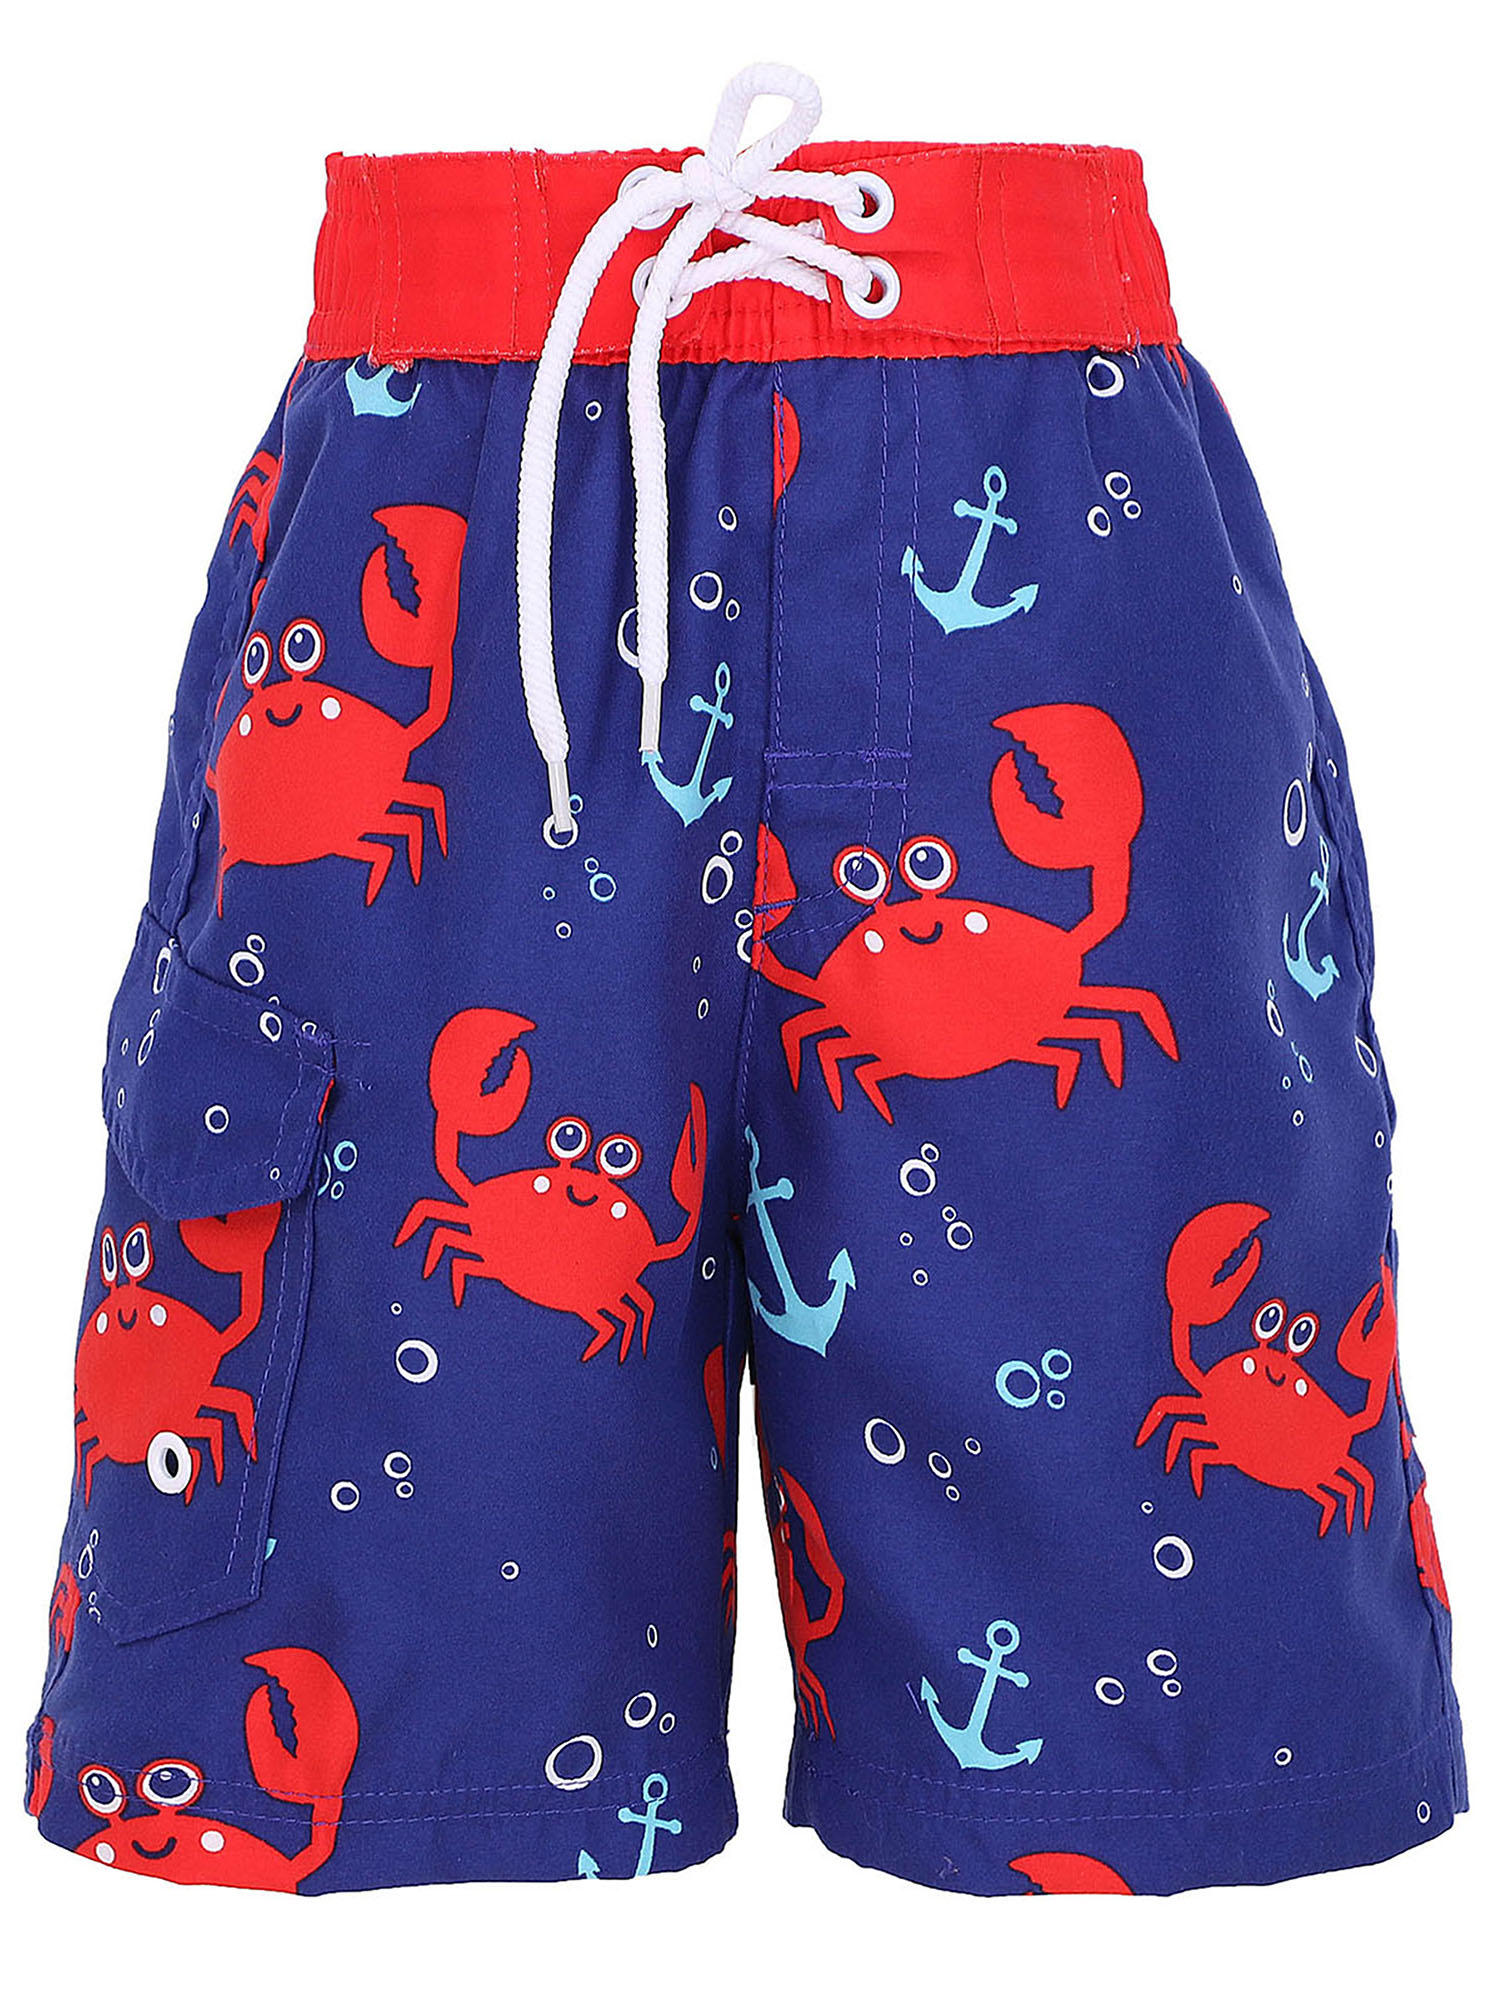 Boys' Fast Drying Sea Creature Sun Protection Swim Trunks, Crab, XL